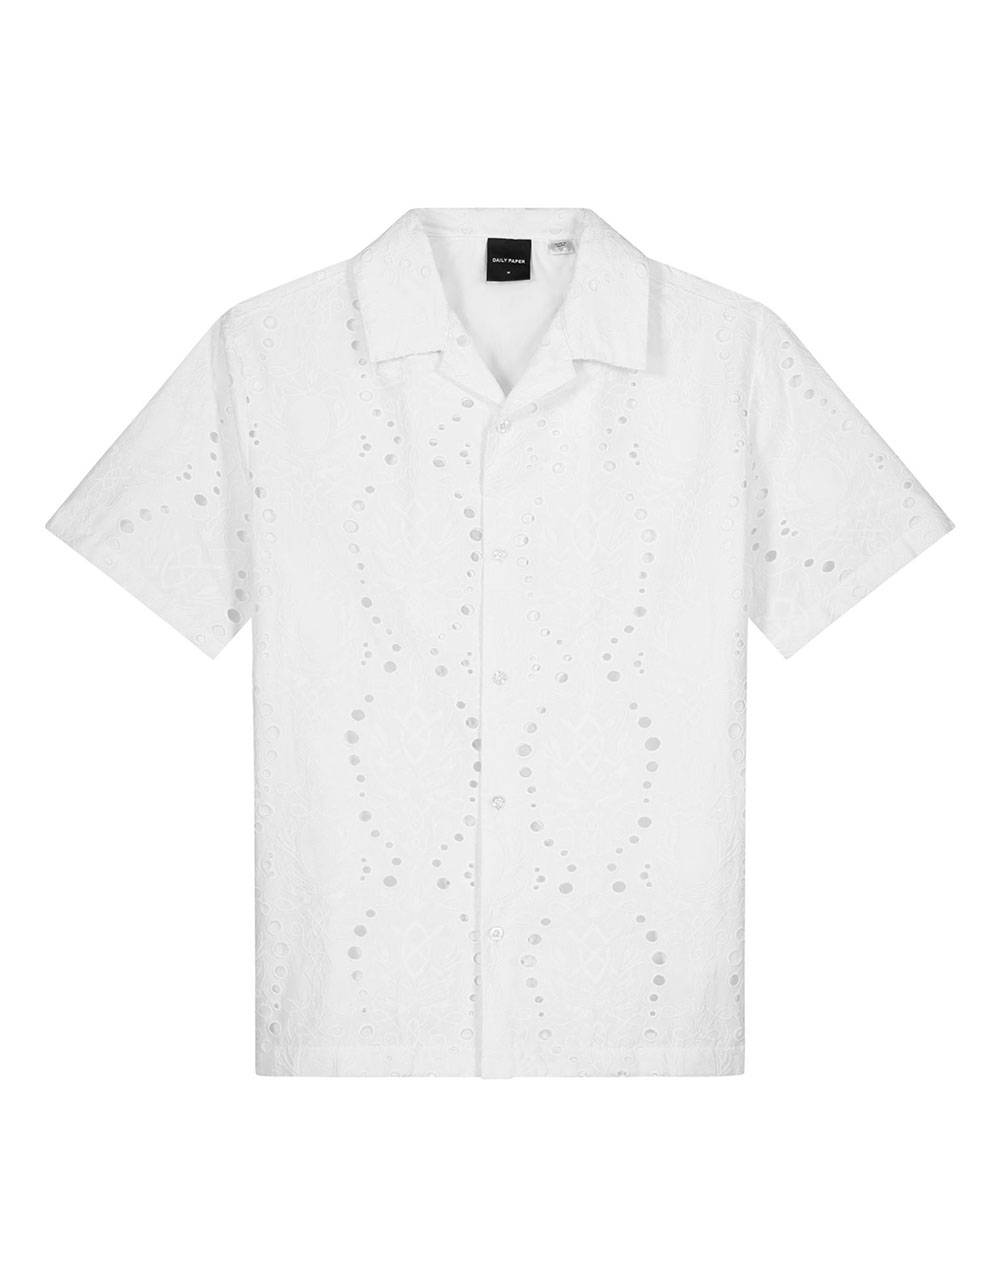 Daily Paper Kovan lace shirt - white DAILY PAPER Shirt 131,15€